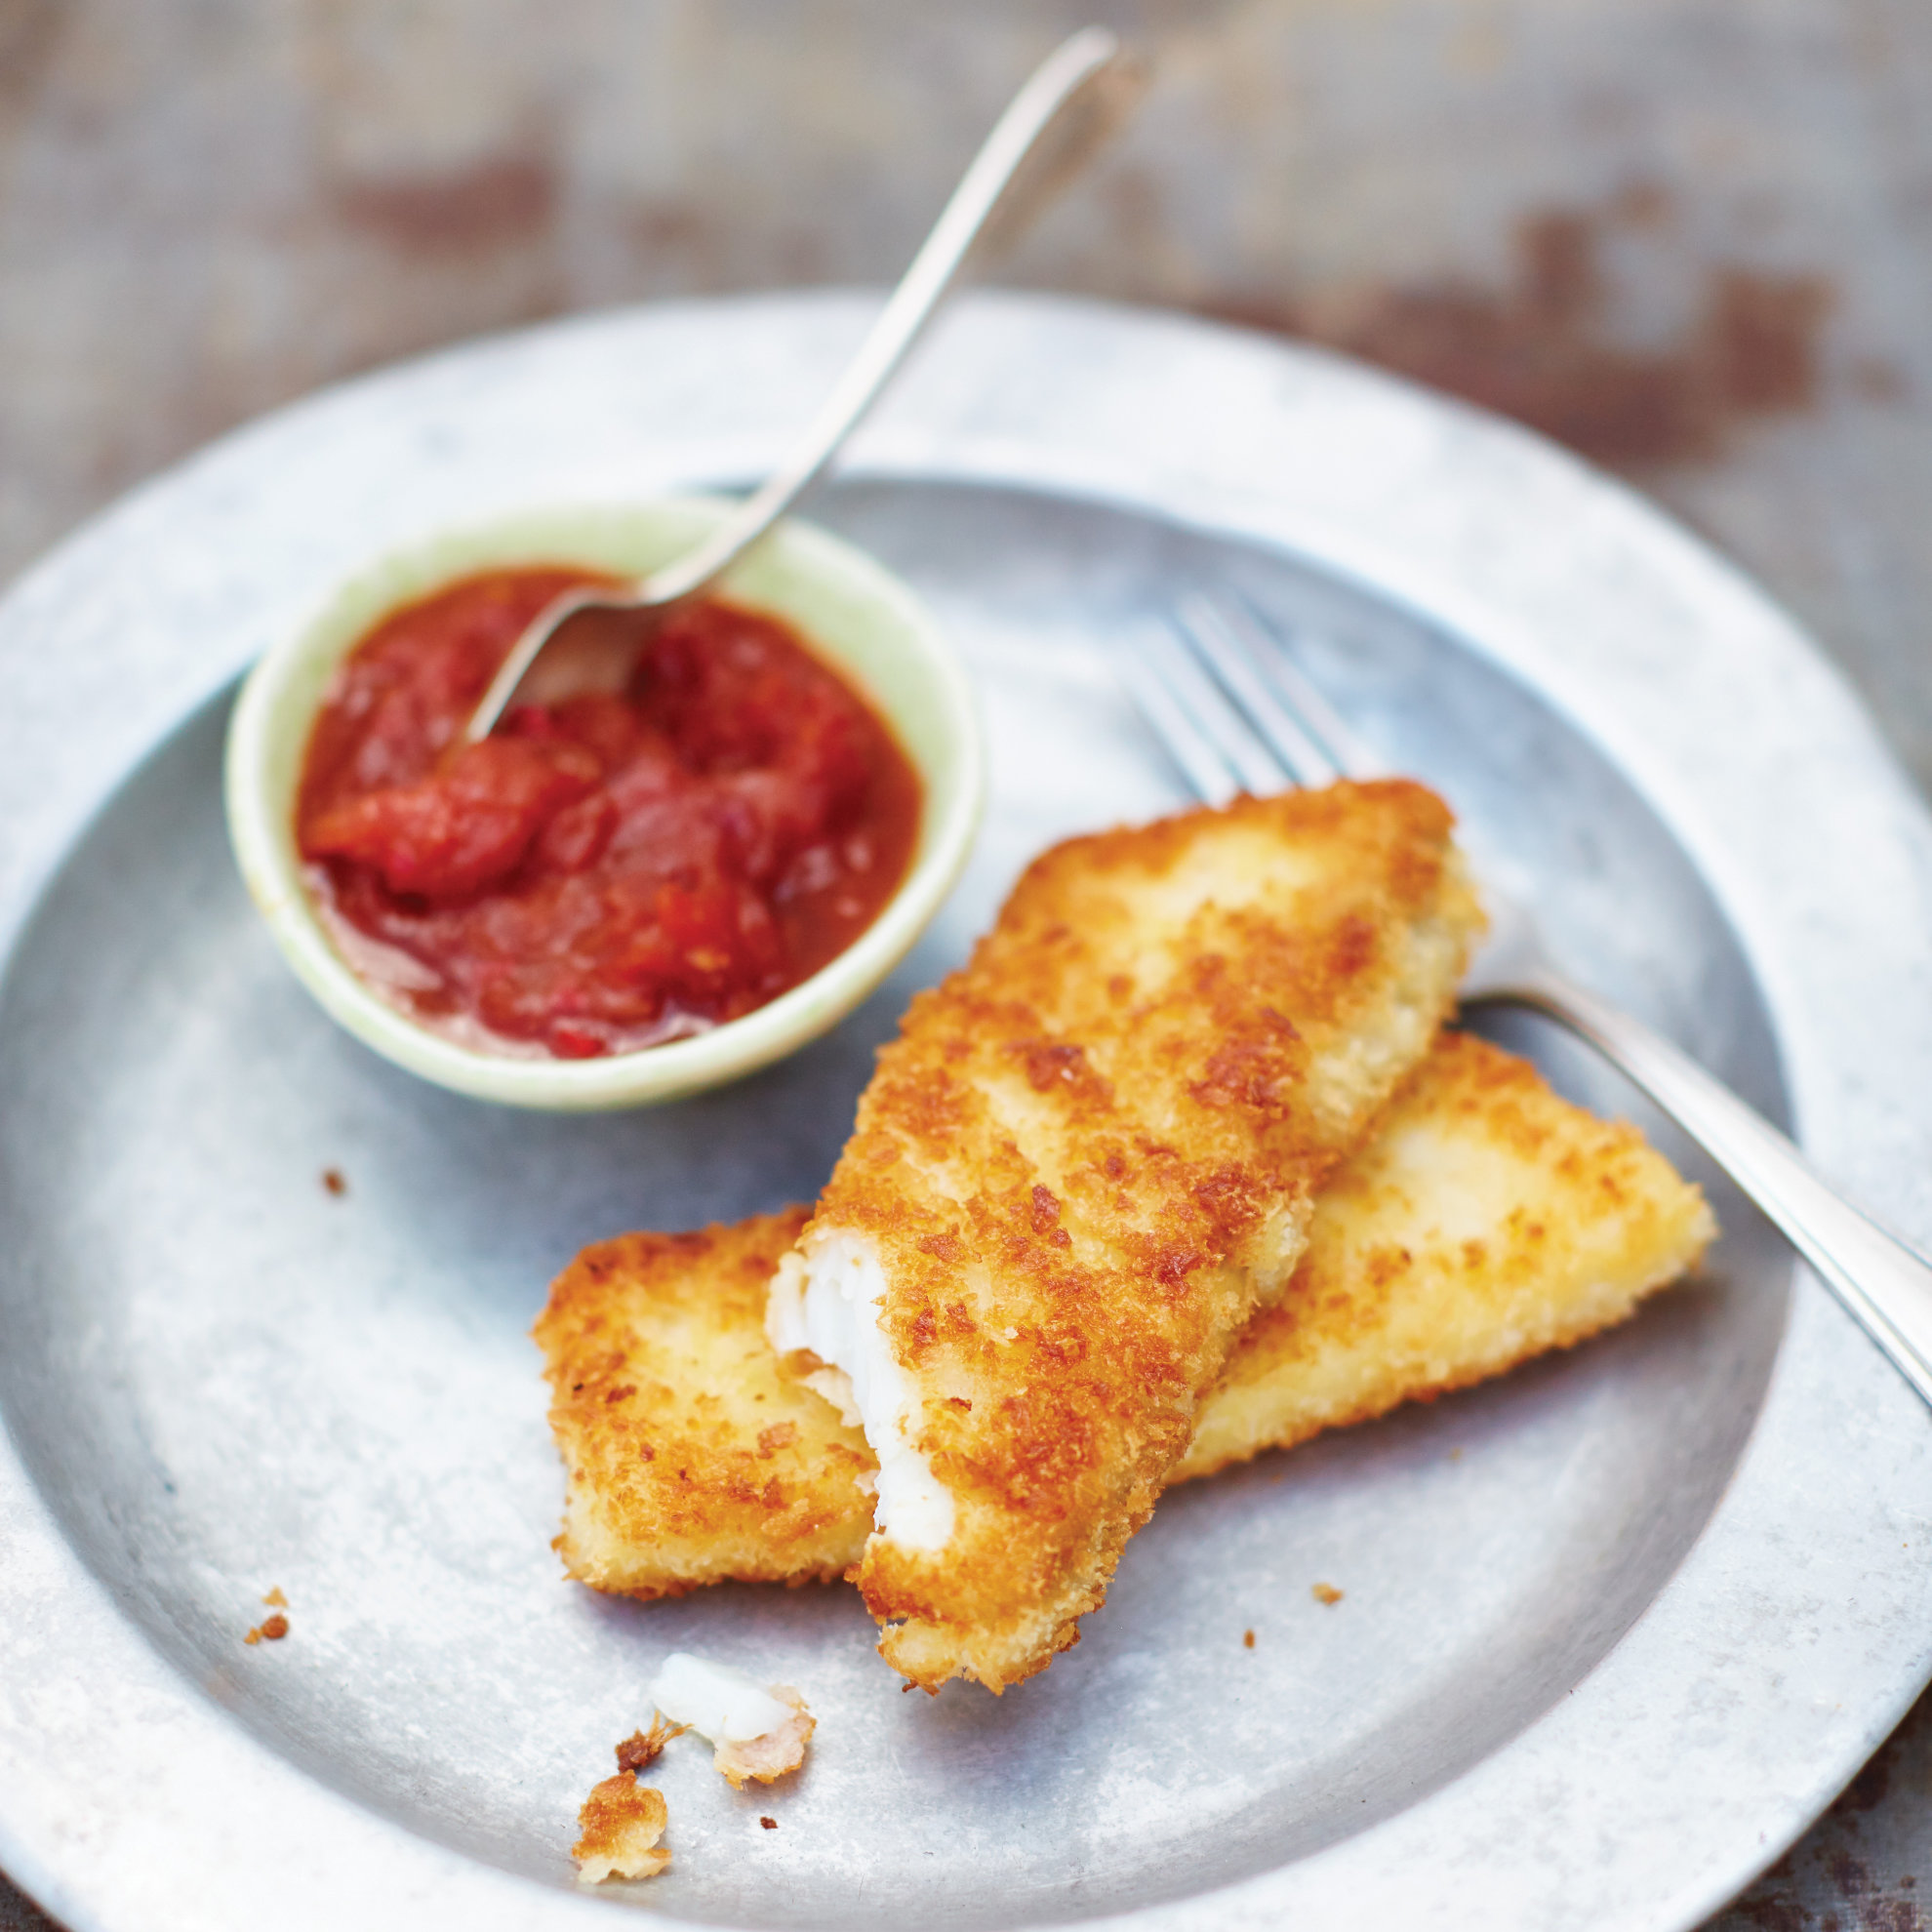 Fish fingers with Ketchup - Recipe by Bart van Olphen, Photo by David Loftus